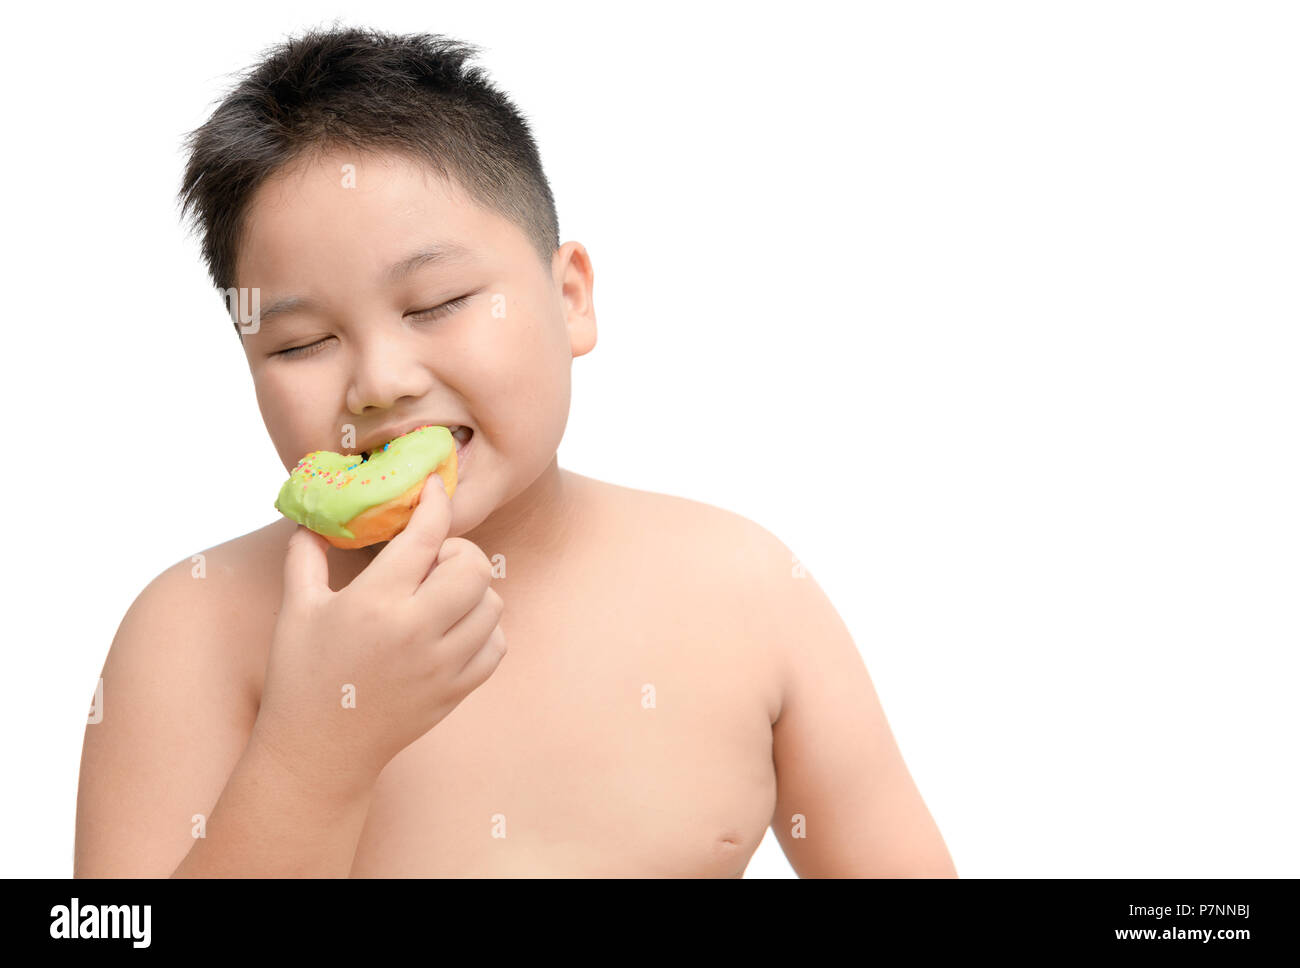 Obese fat boy enjoy to  eating donut isolated on white background, junk food and dieting concept - Stock Image